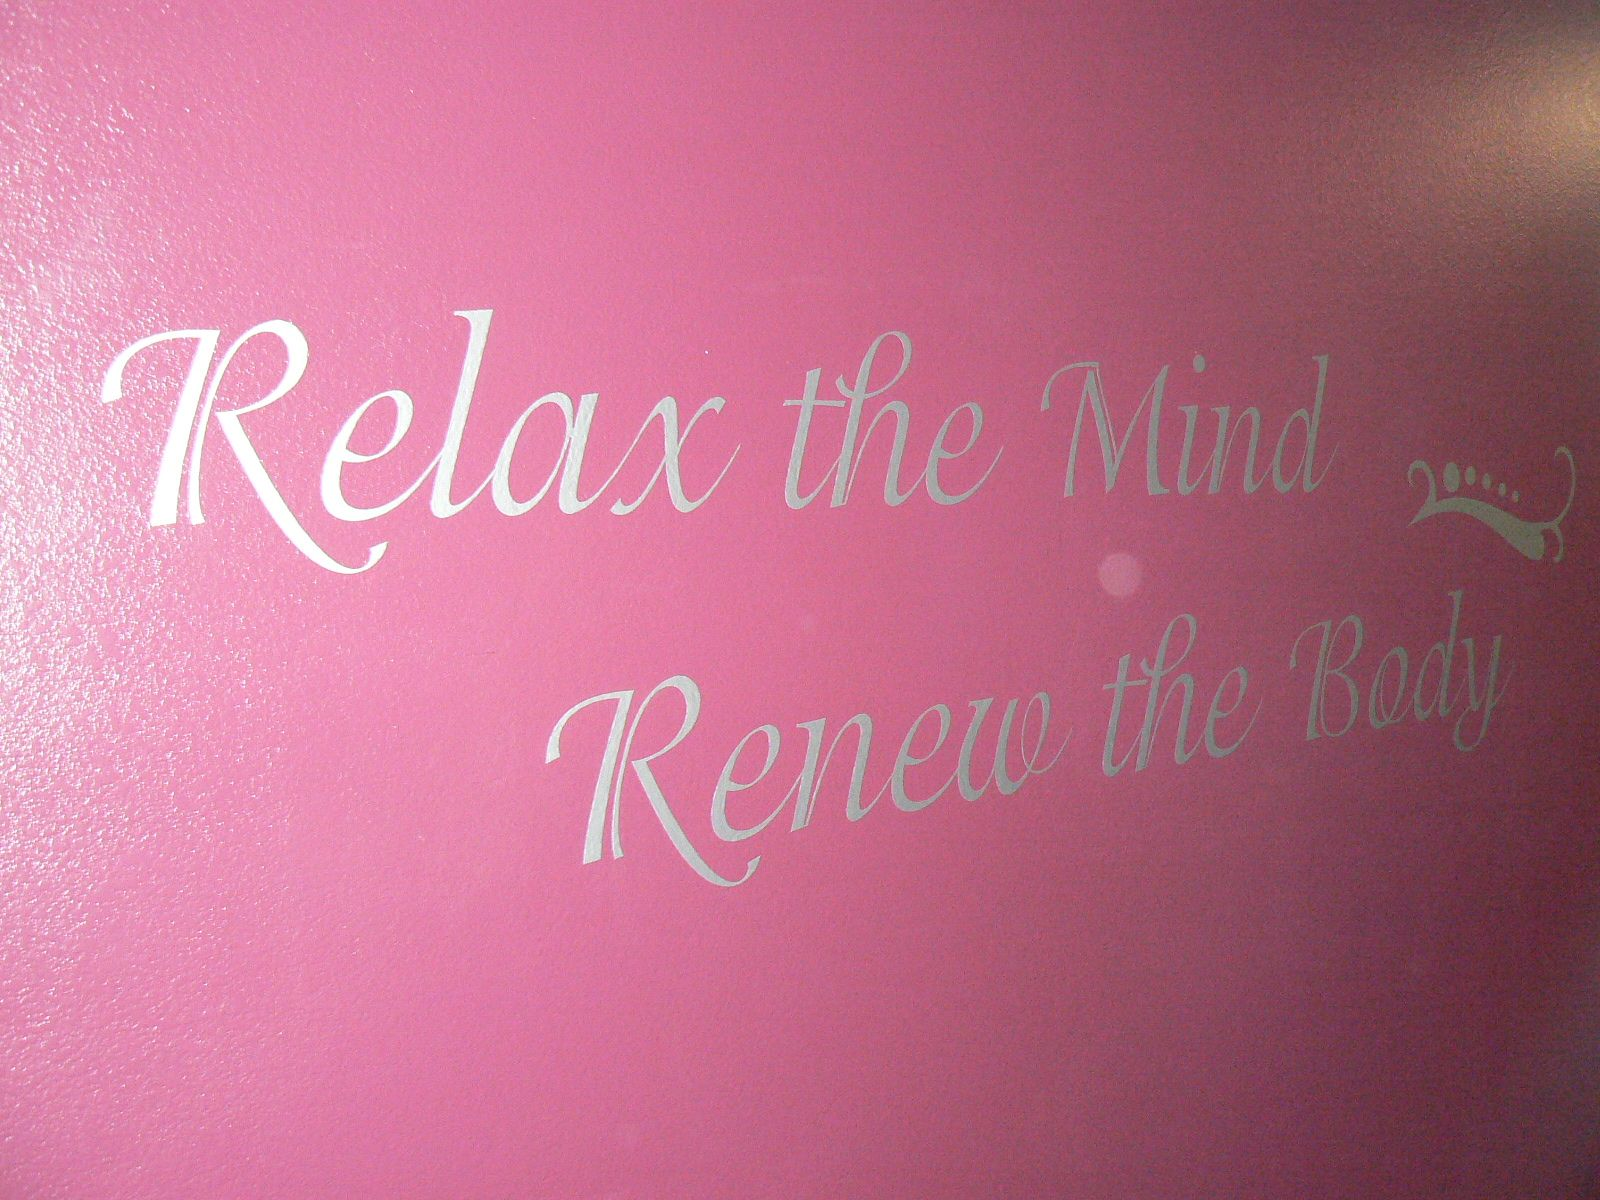 Wall decal for your treatment room